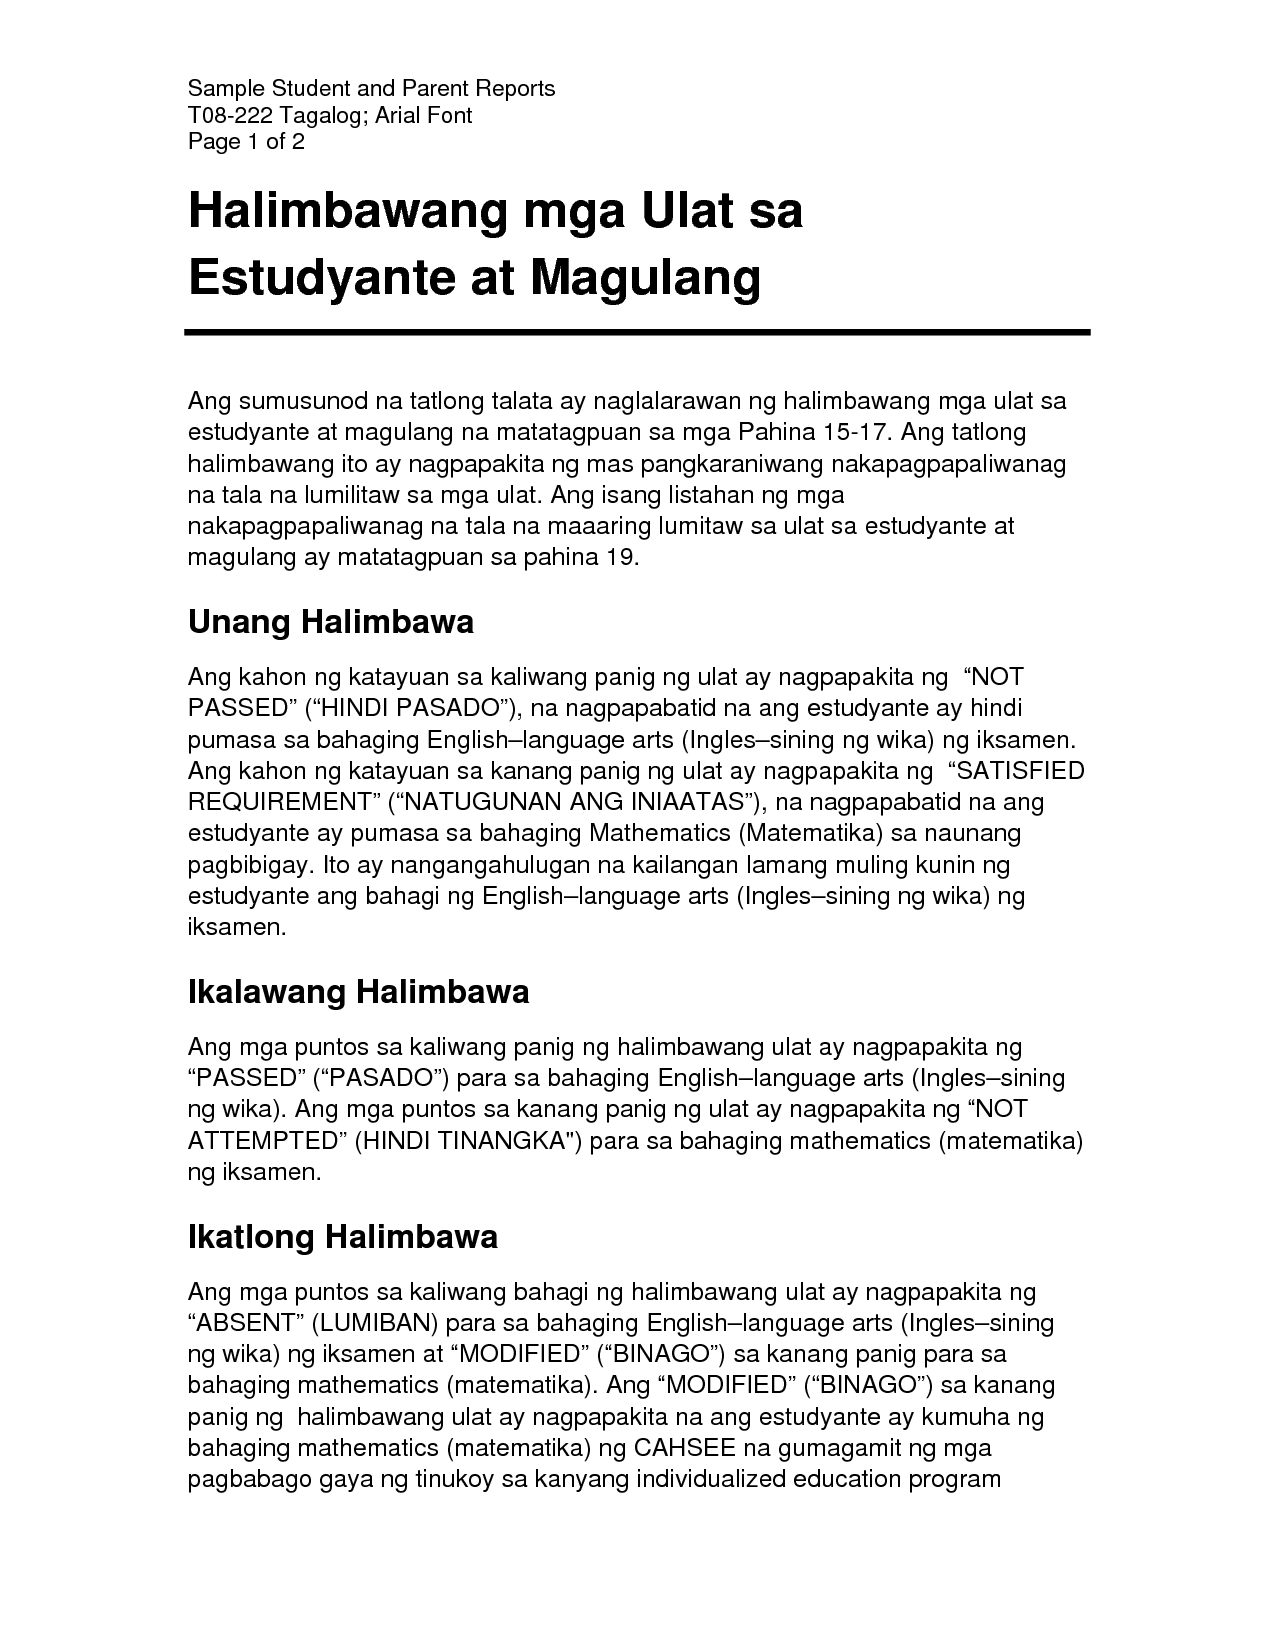 term paper tungkol sa working student Home forums newgen theme research paper tungkol sa mga working student – 442105.